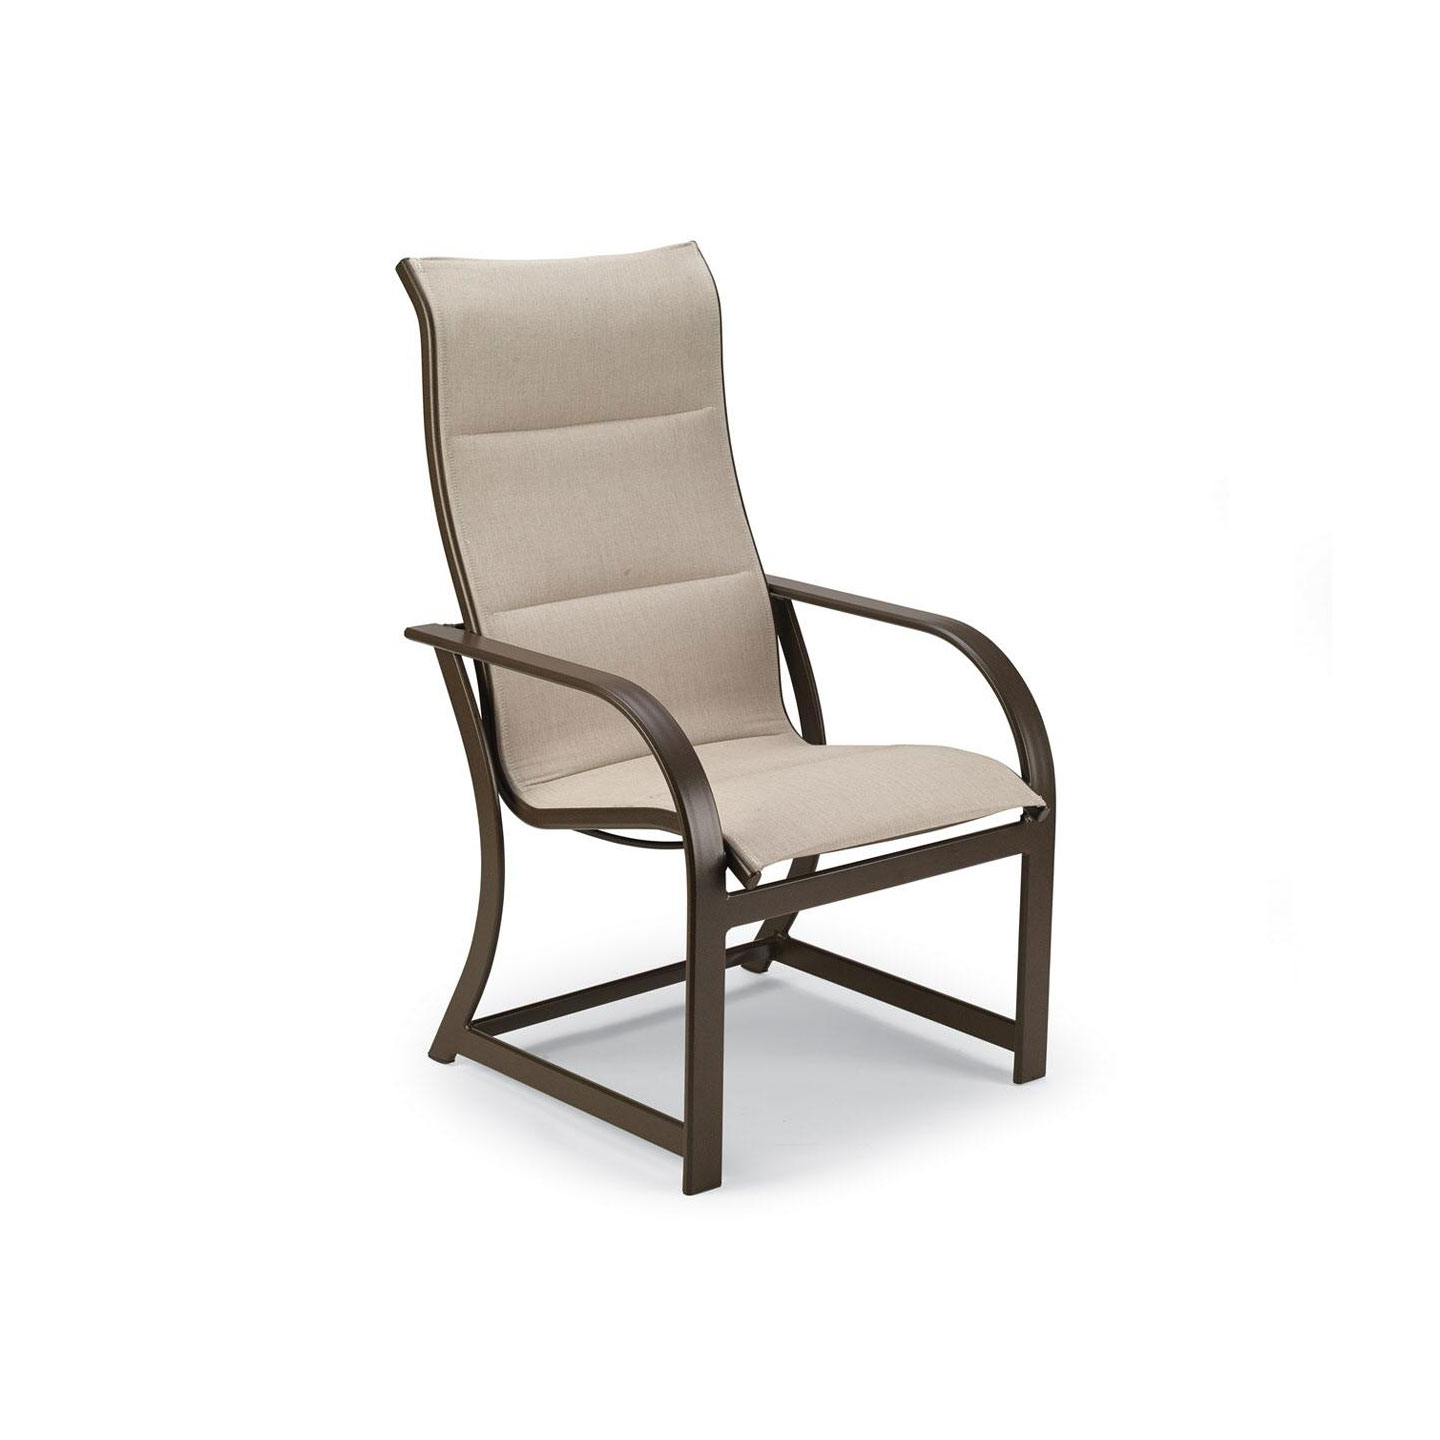 key west chairs chair and ottoman sets target winston padded sling dining outdoor